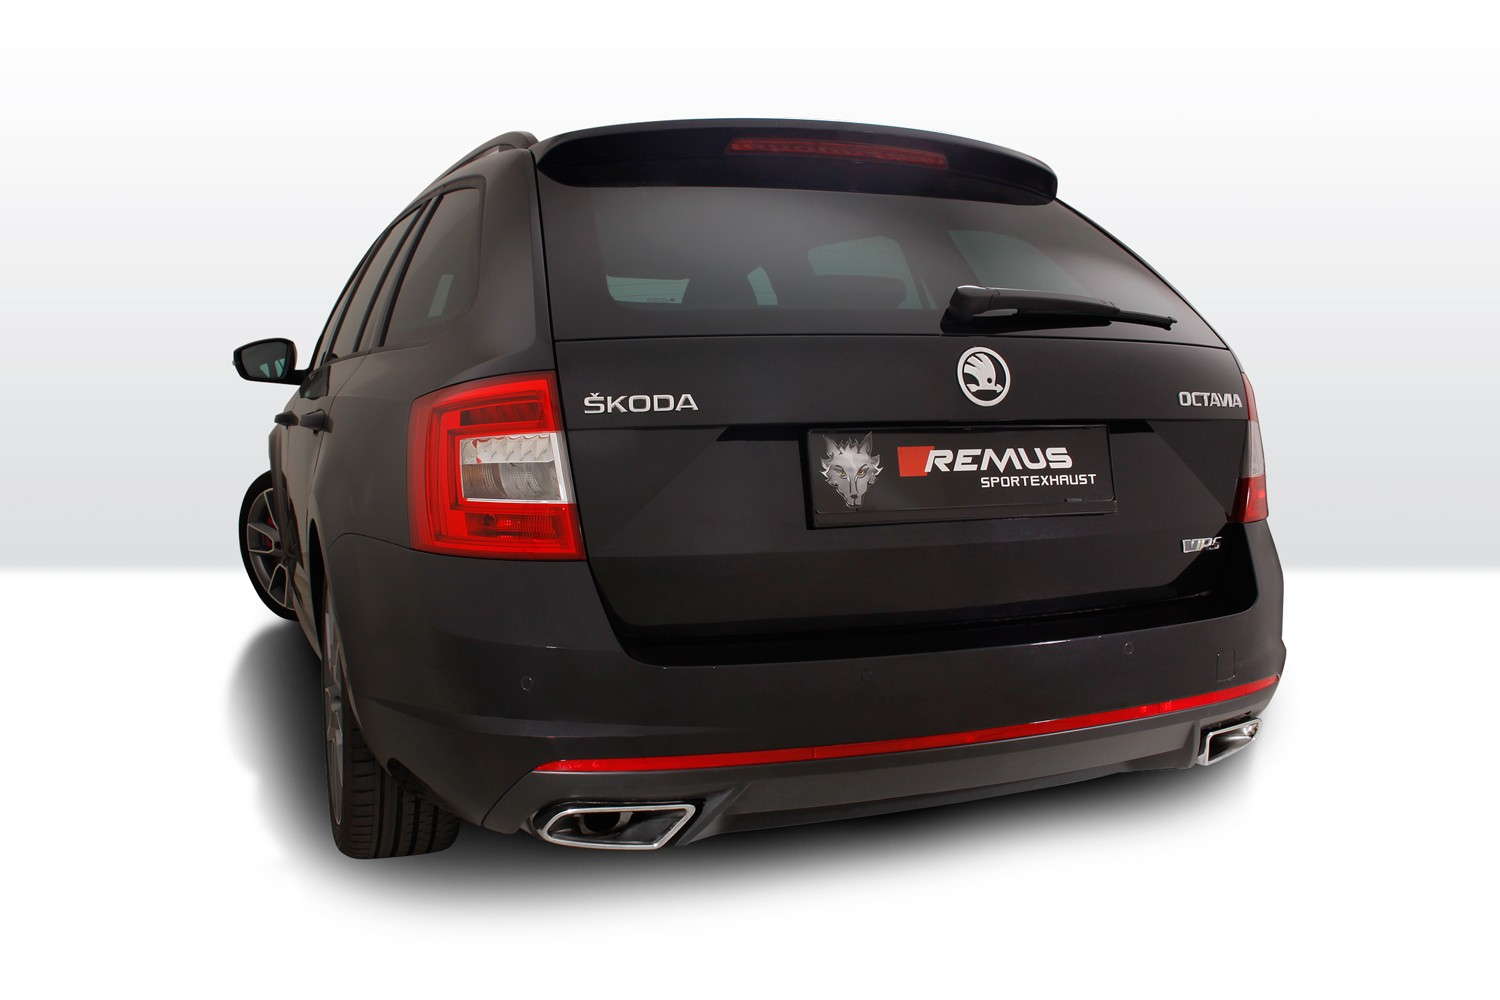 Skoda octavia rs with remus exhaust sounds awesome thanks to active